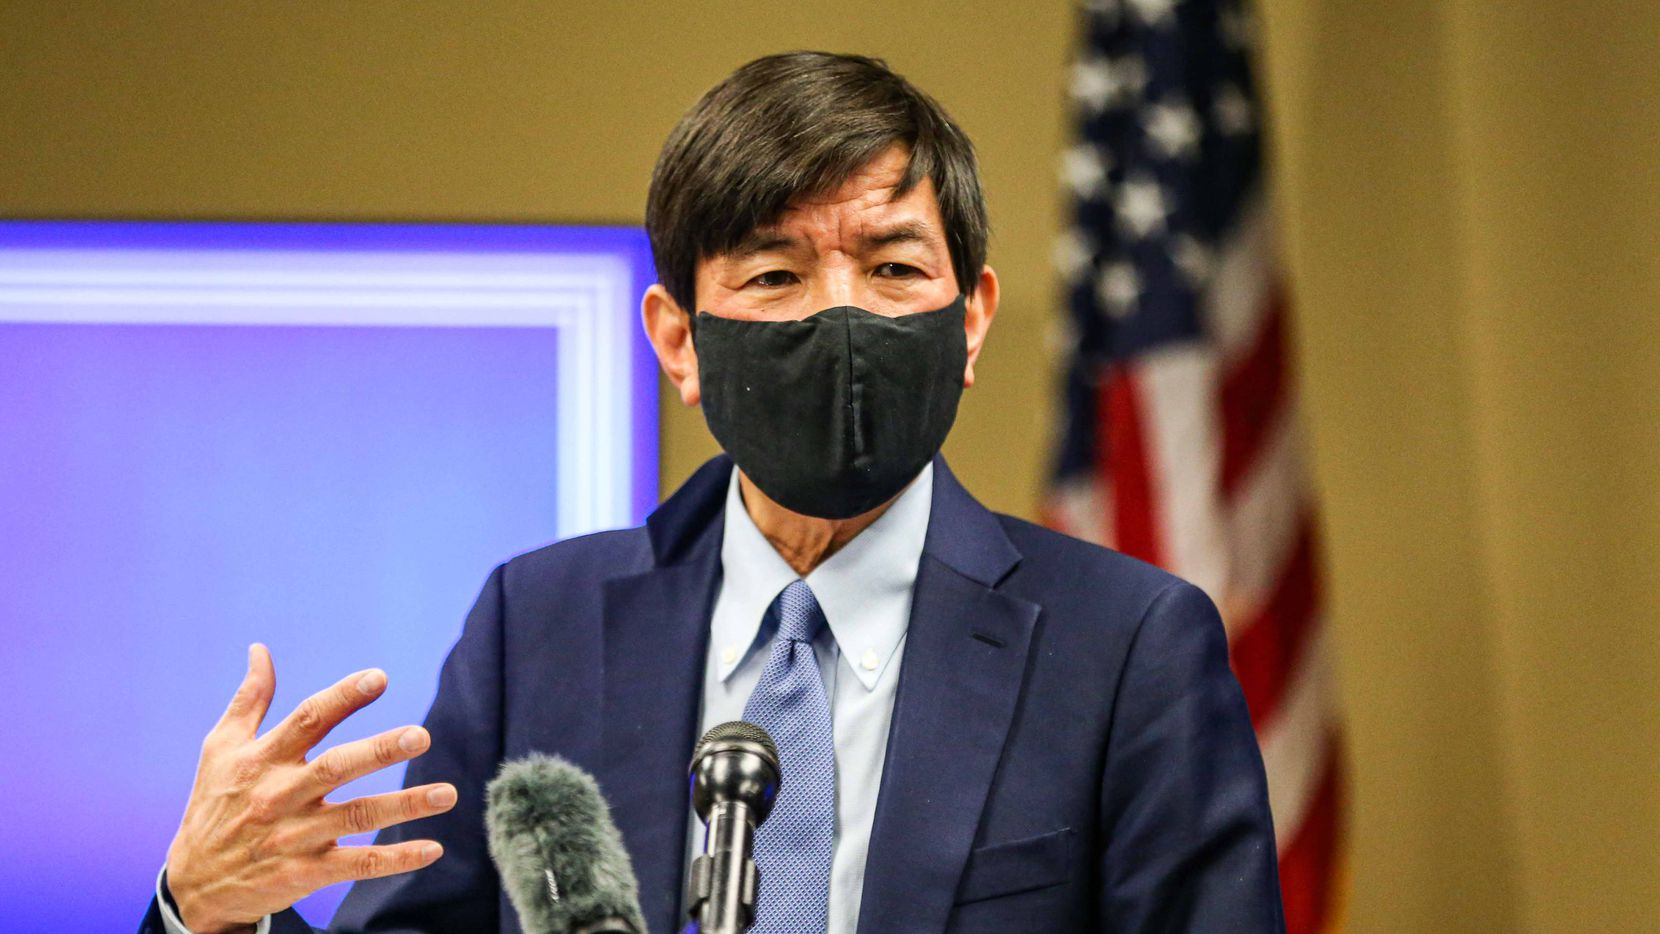 Dr. Philip Huang, Director of the Dallas County Health and Human Services, during a press conference to discuss the coronavirus pandemic in Dallas on  Dec. 18, 2020. Dallas County Health and Human Services is distributing housing assistance funded by the CARES Act.